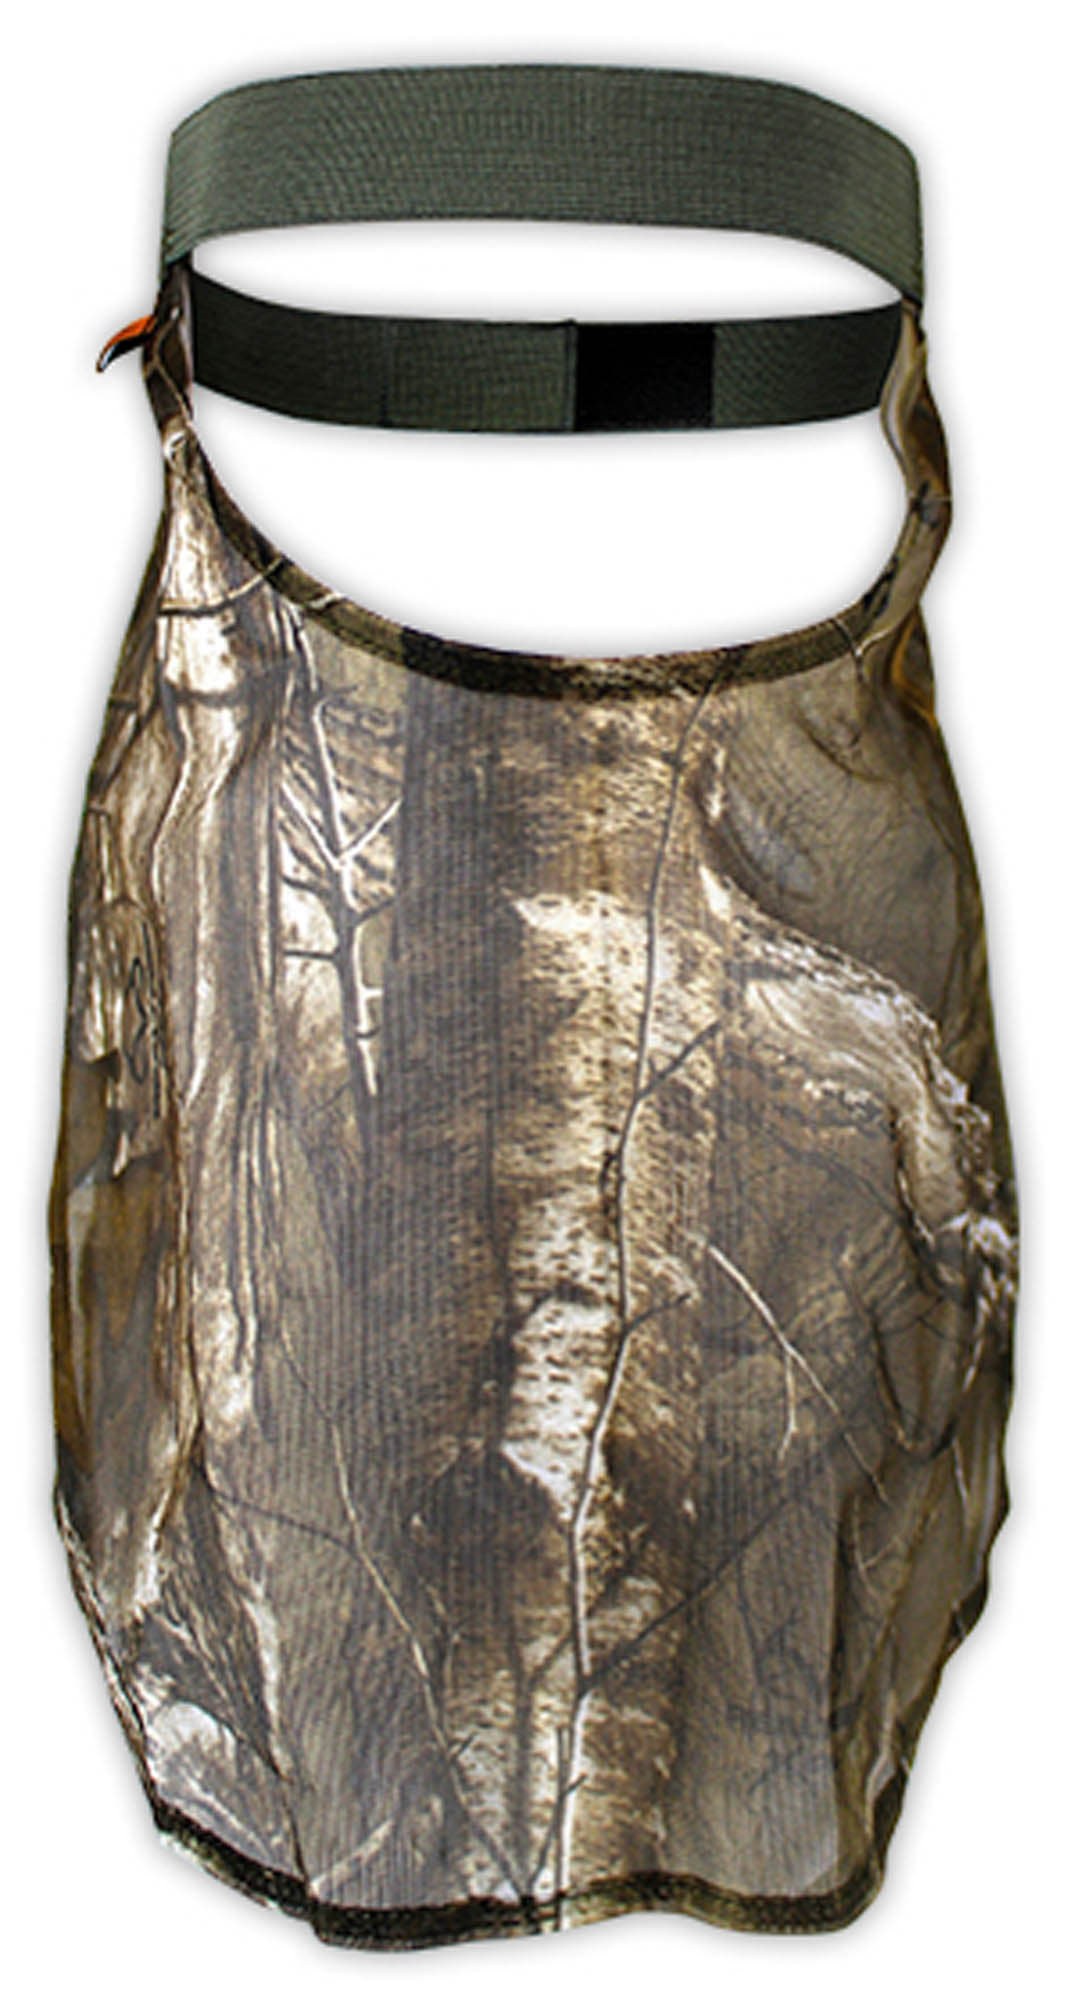 A50614-Couvre visage Realtree camo - Spika - A50614